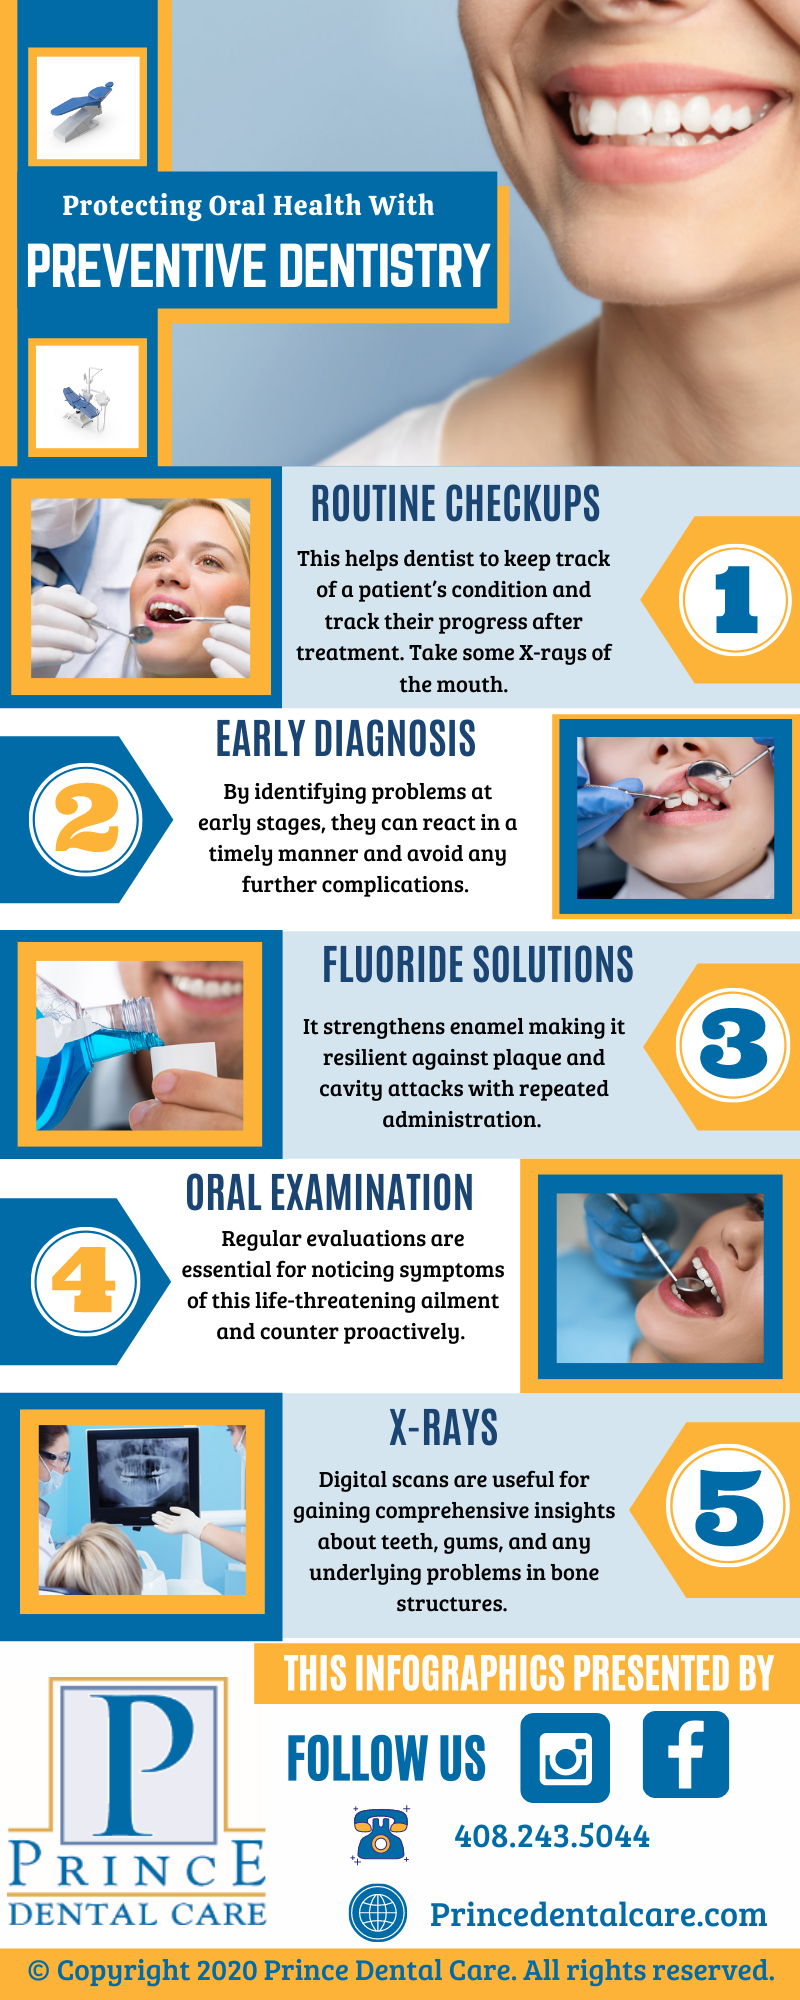 Take Care of Your Oral Health